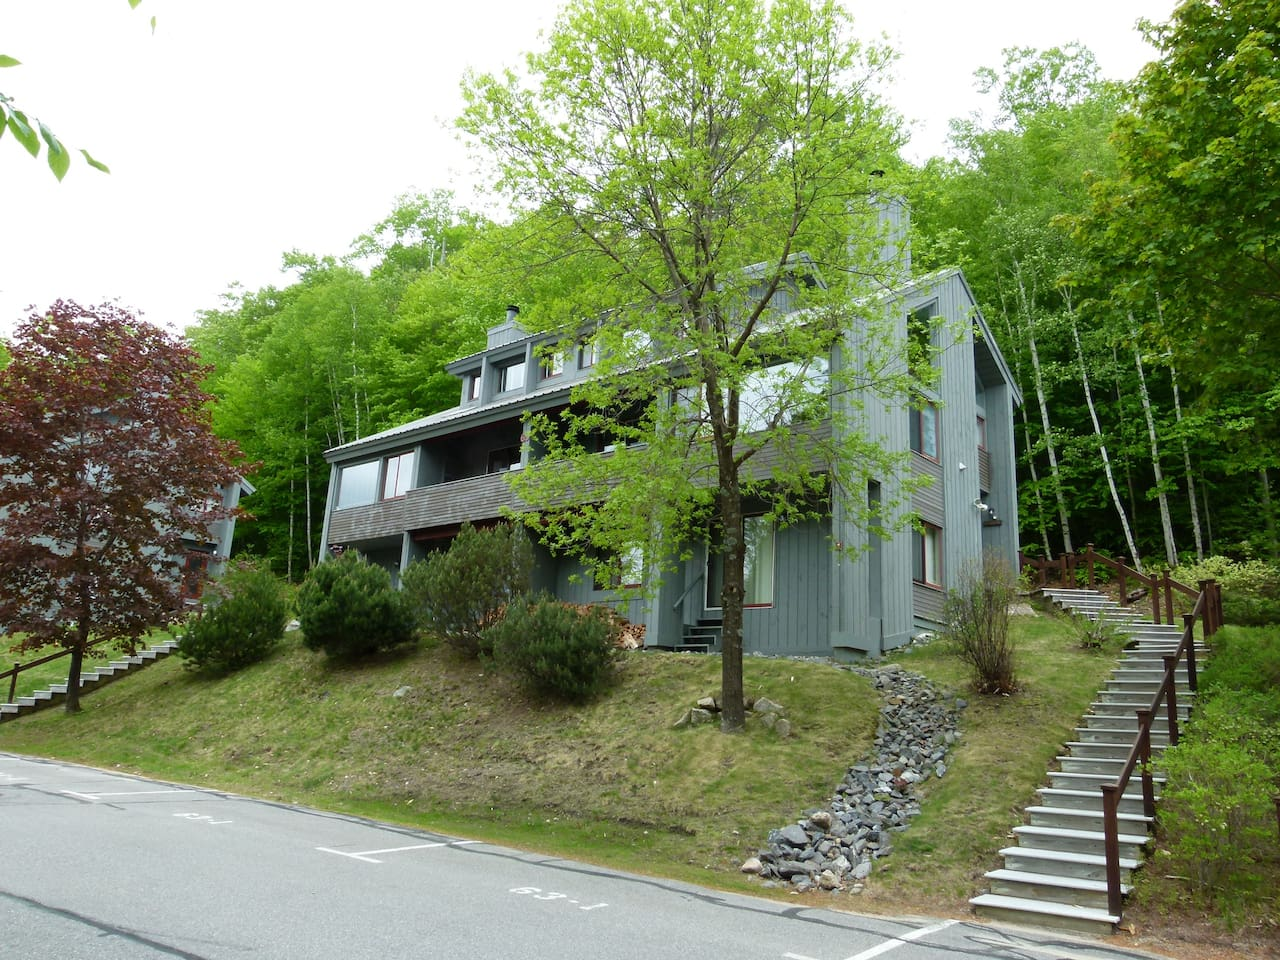 Fully renovated in 2018, 4BD/2BA sunny home in the mountains